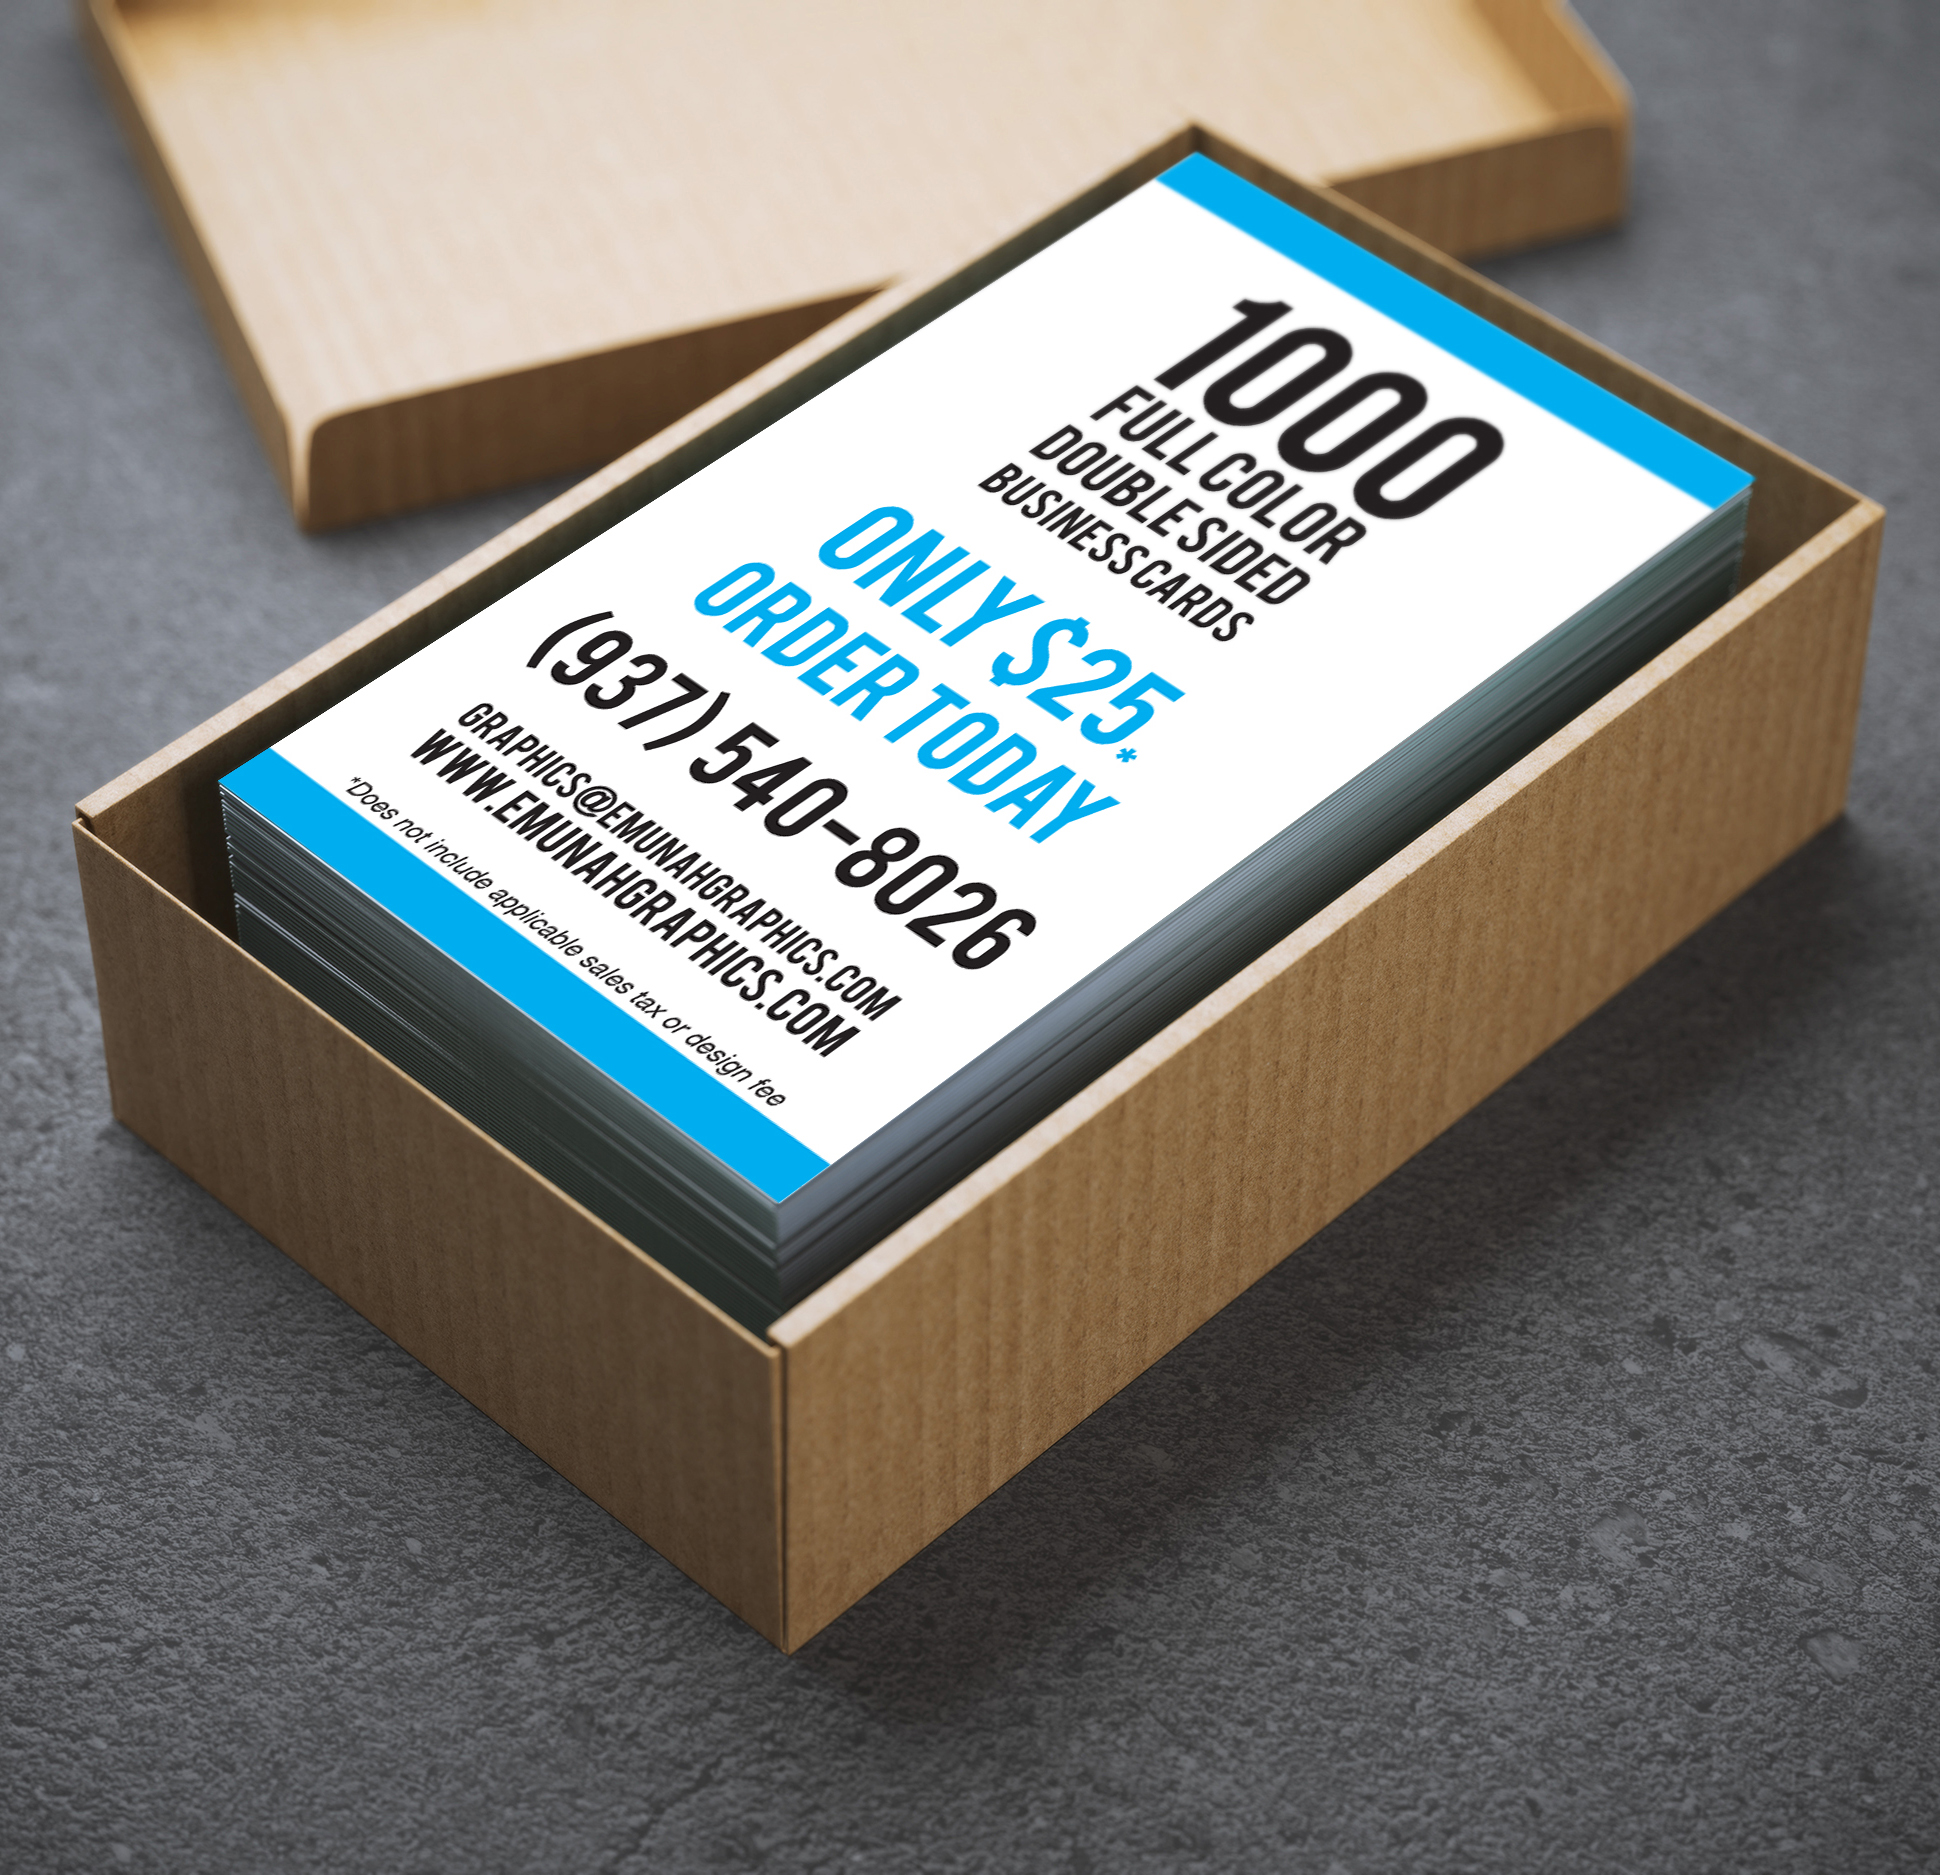 Get 1000 Full-color, double-sided business cards starting as low as $25!